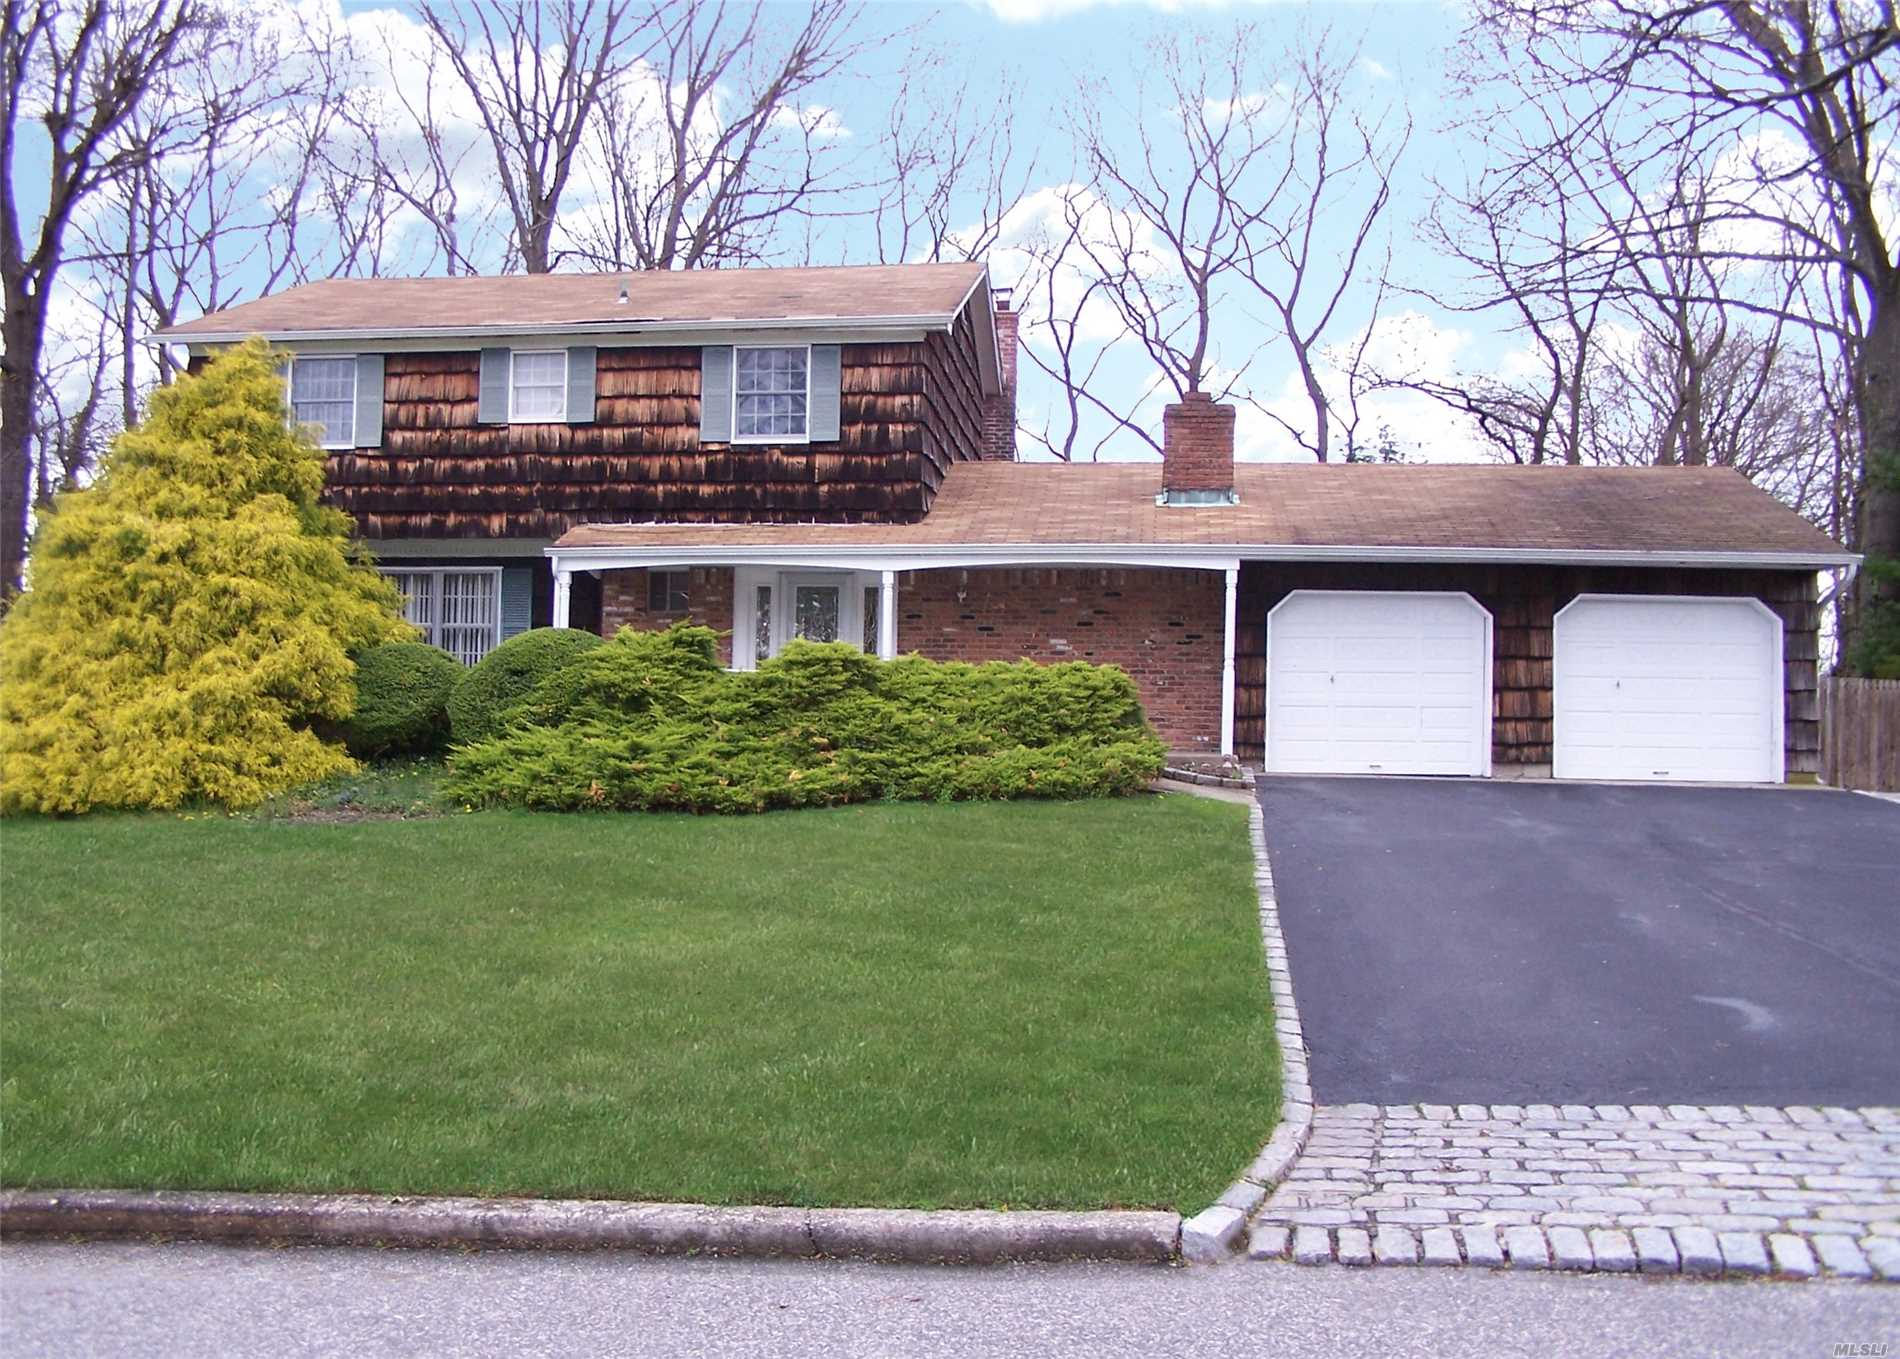 clean and well maintained tides colonial in prime location. home has central air/updayed oil burner/fireplace/wood floors throughout both levels/2 car garage/full basement/l shaped pool with paver surround/anderson windows/and much more. great price and opportunity to own a home is the tides community